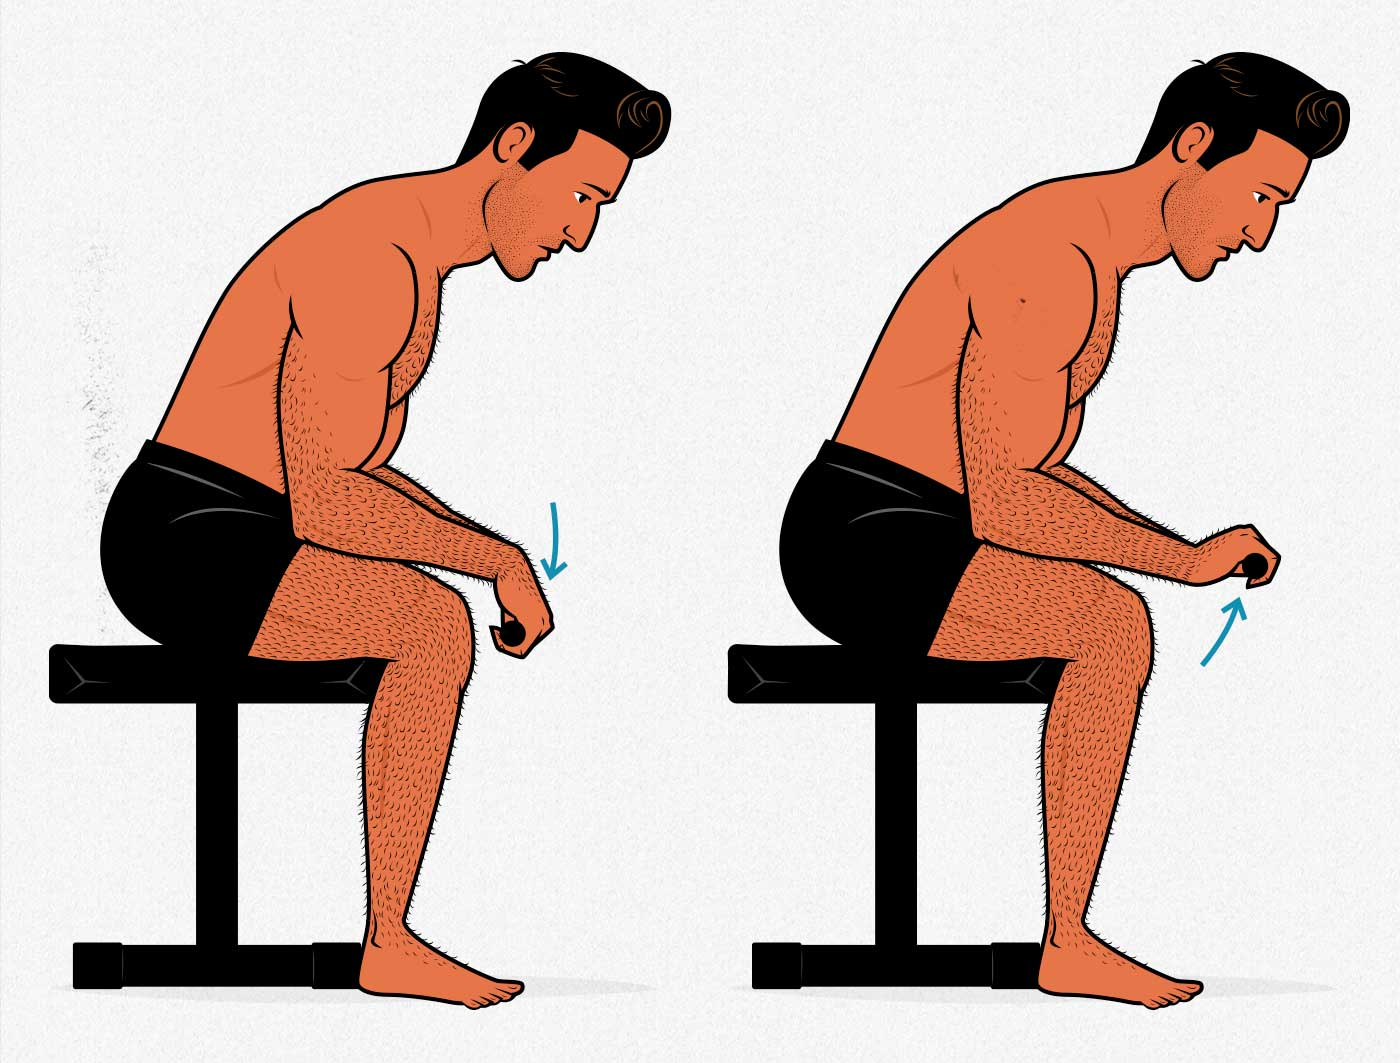 Illustration of a man showing how to do the seated wrist extension exercise to build bigger forearms.